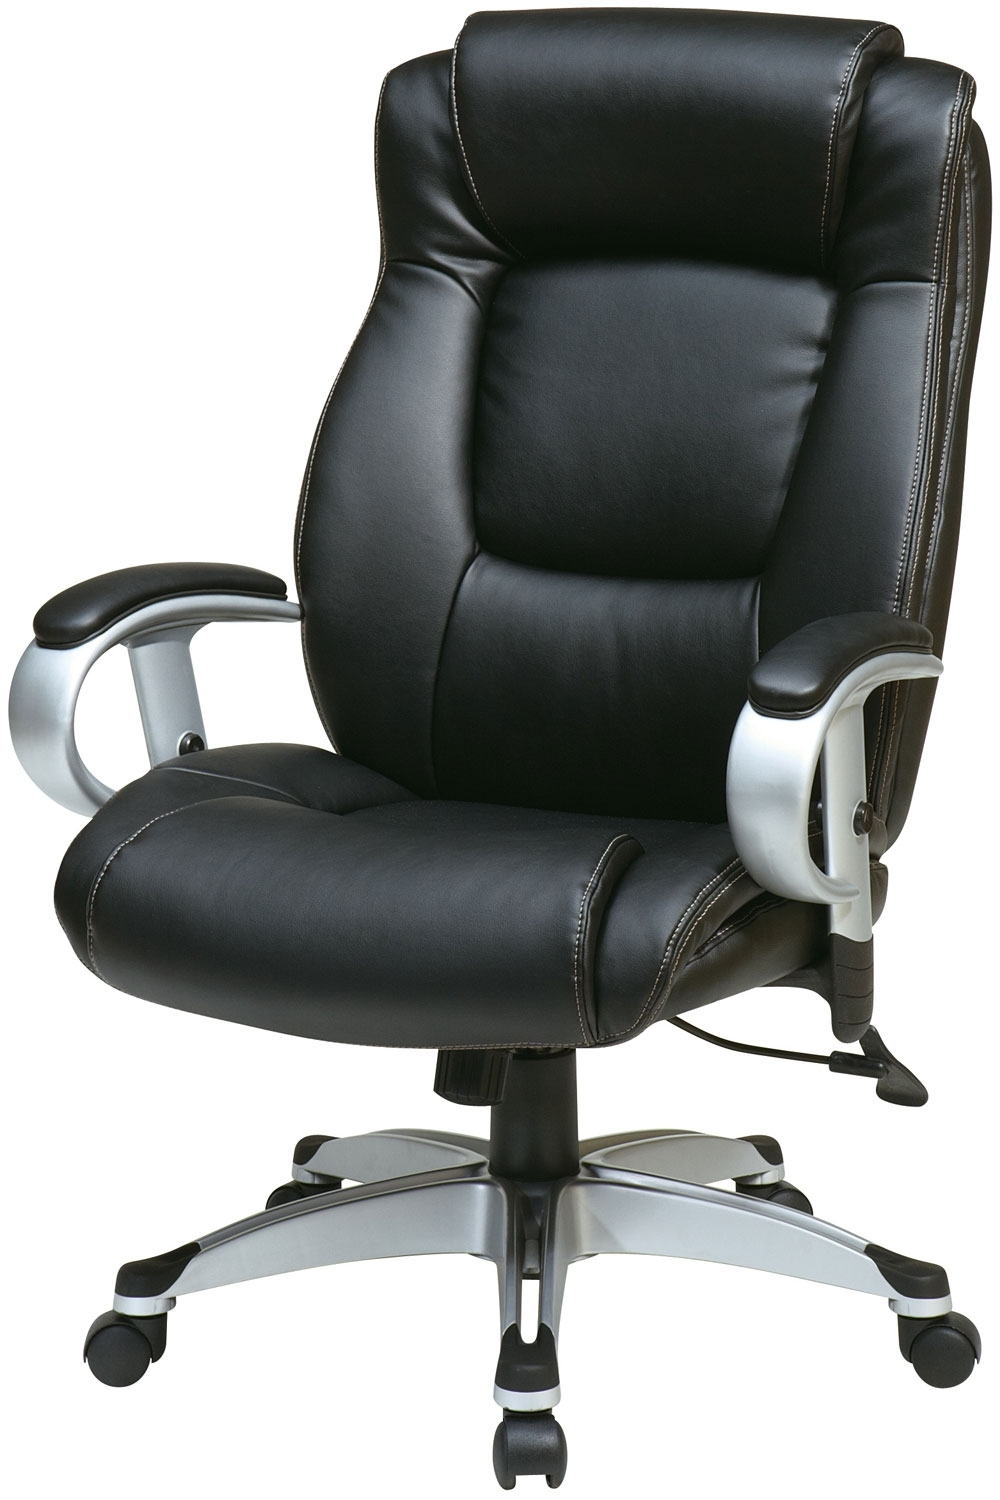 Executive Desk Chair Without Arms For Most Recent Ech52666 Ec3 Office Star – Executive Black Eco Leather Chair With (View 13 of 20)